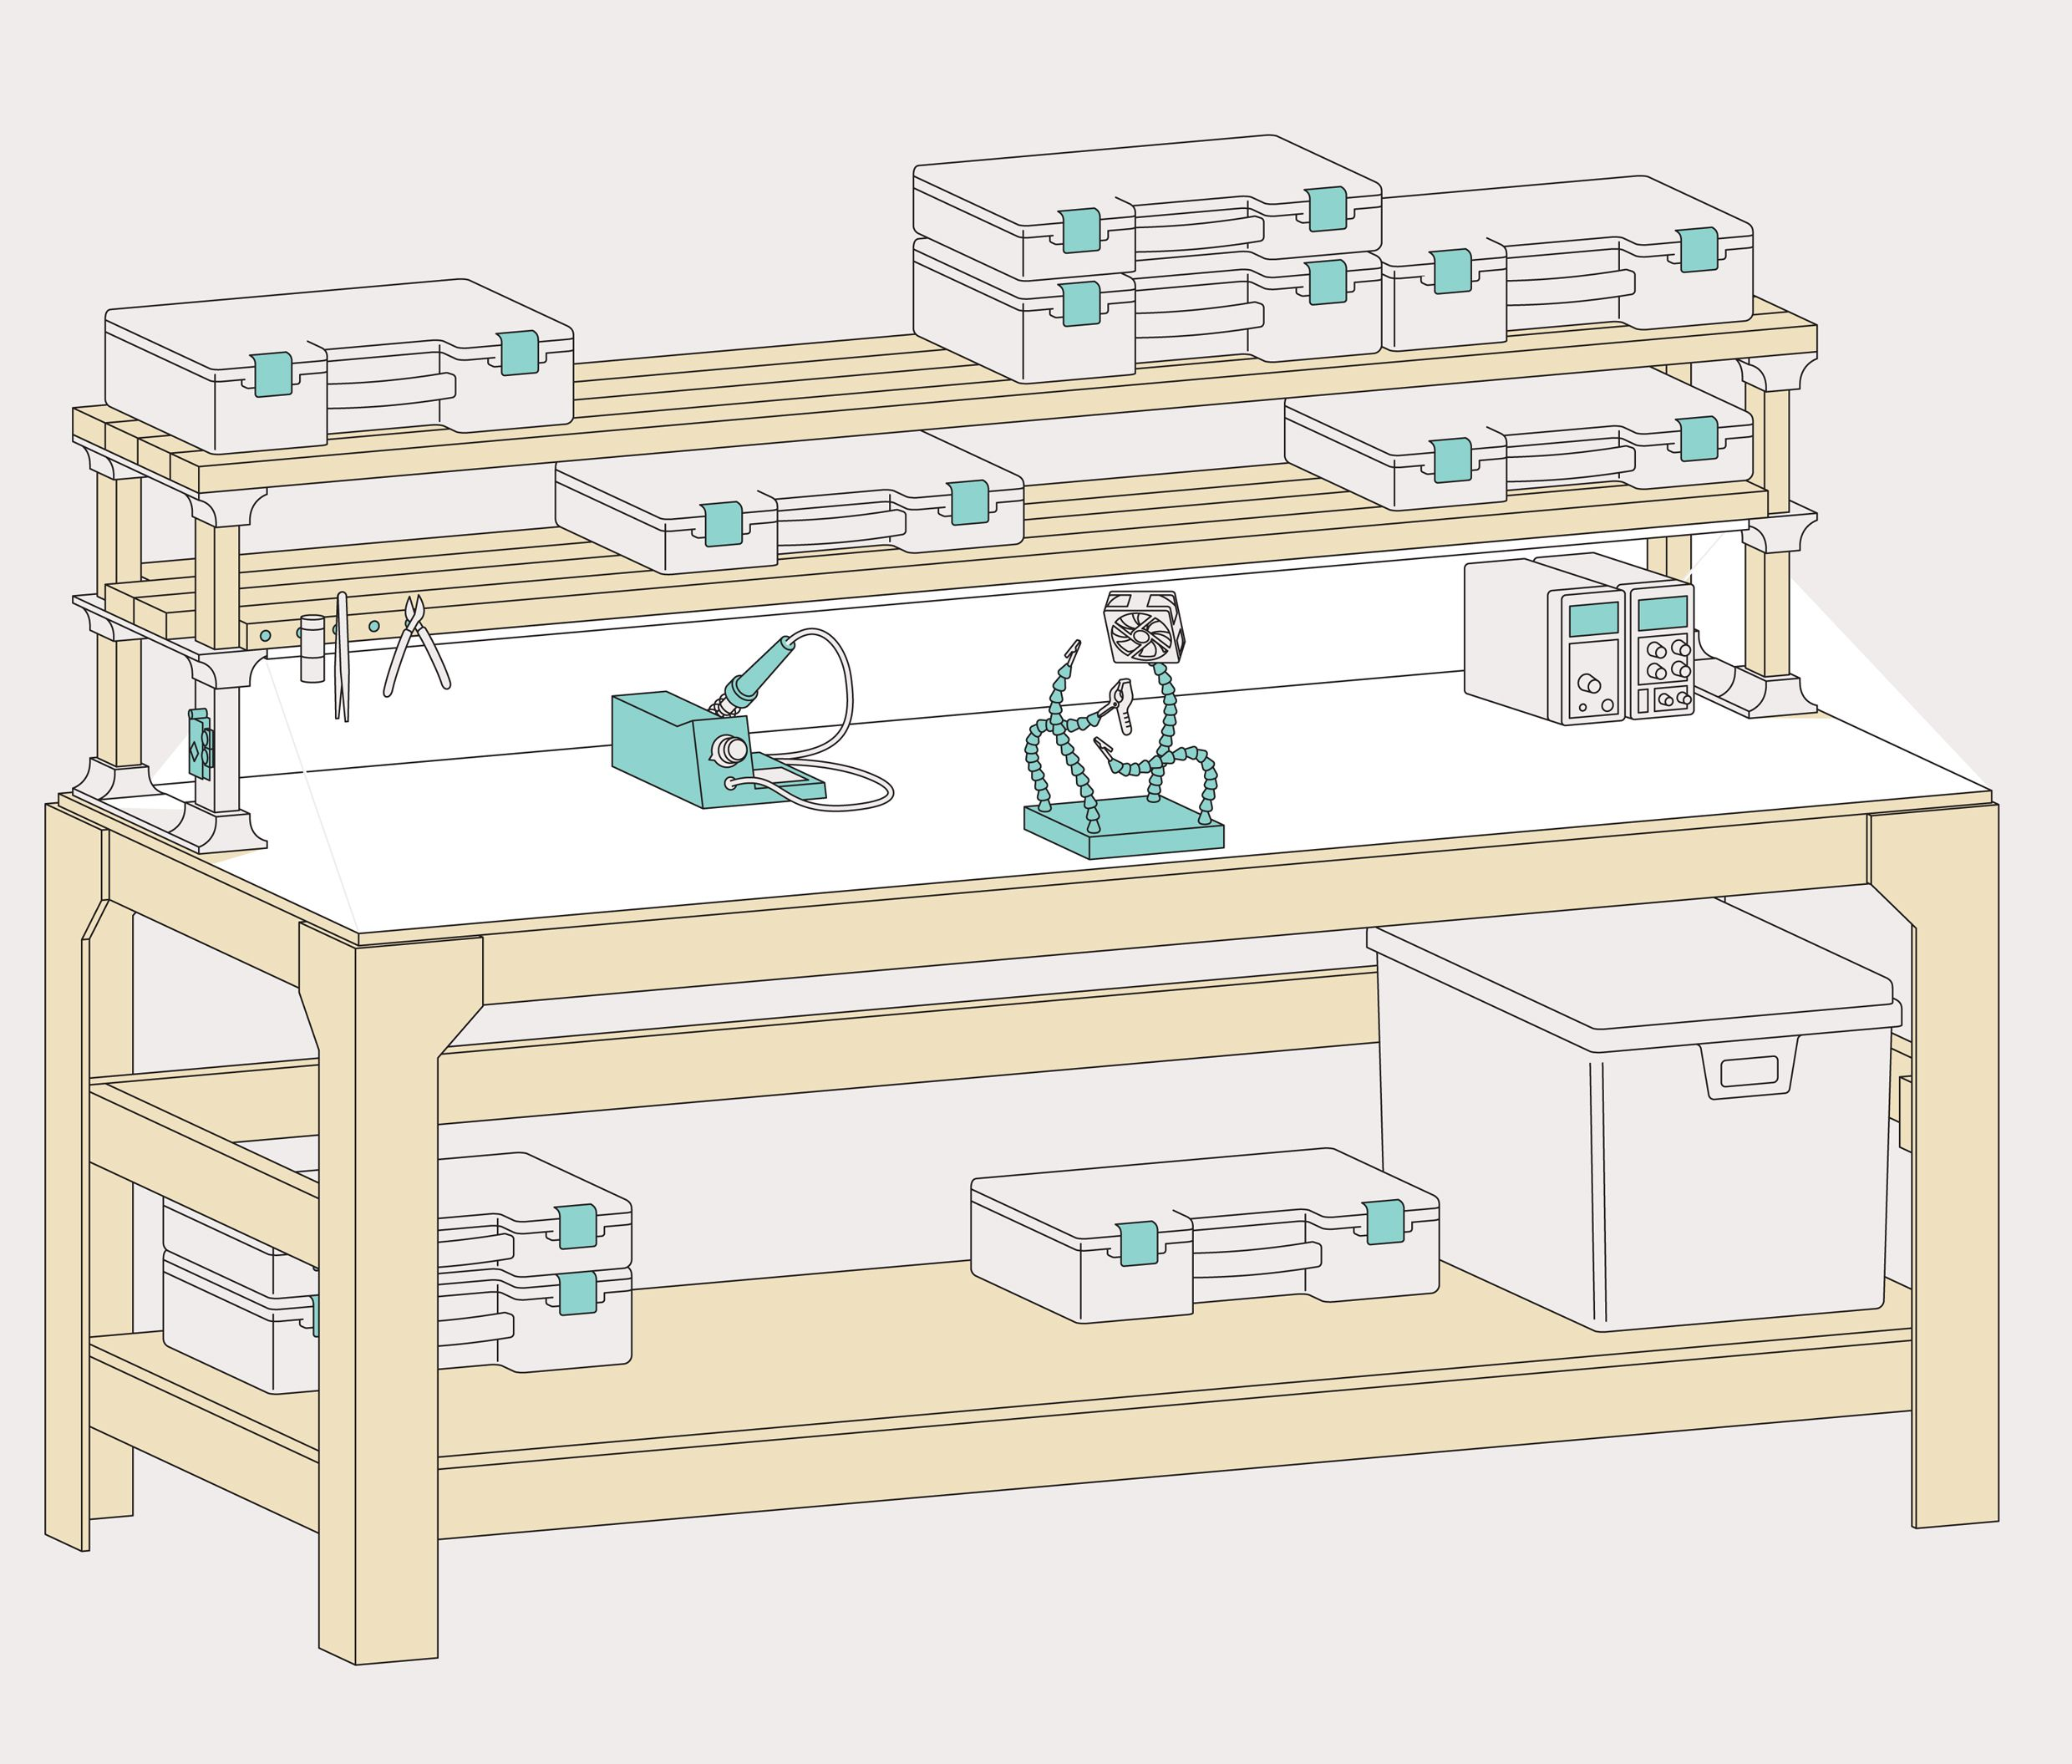 Illustration of a workbench.